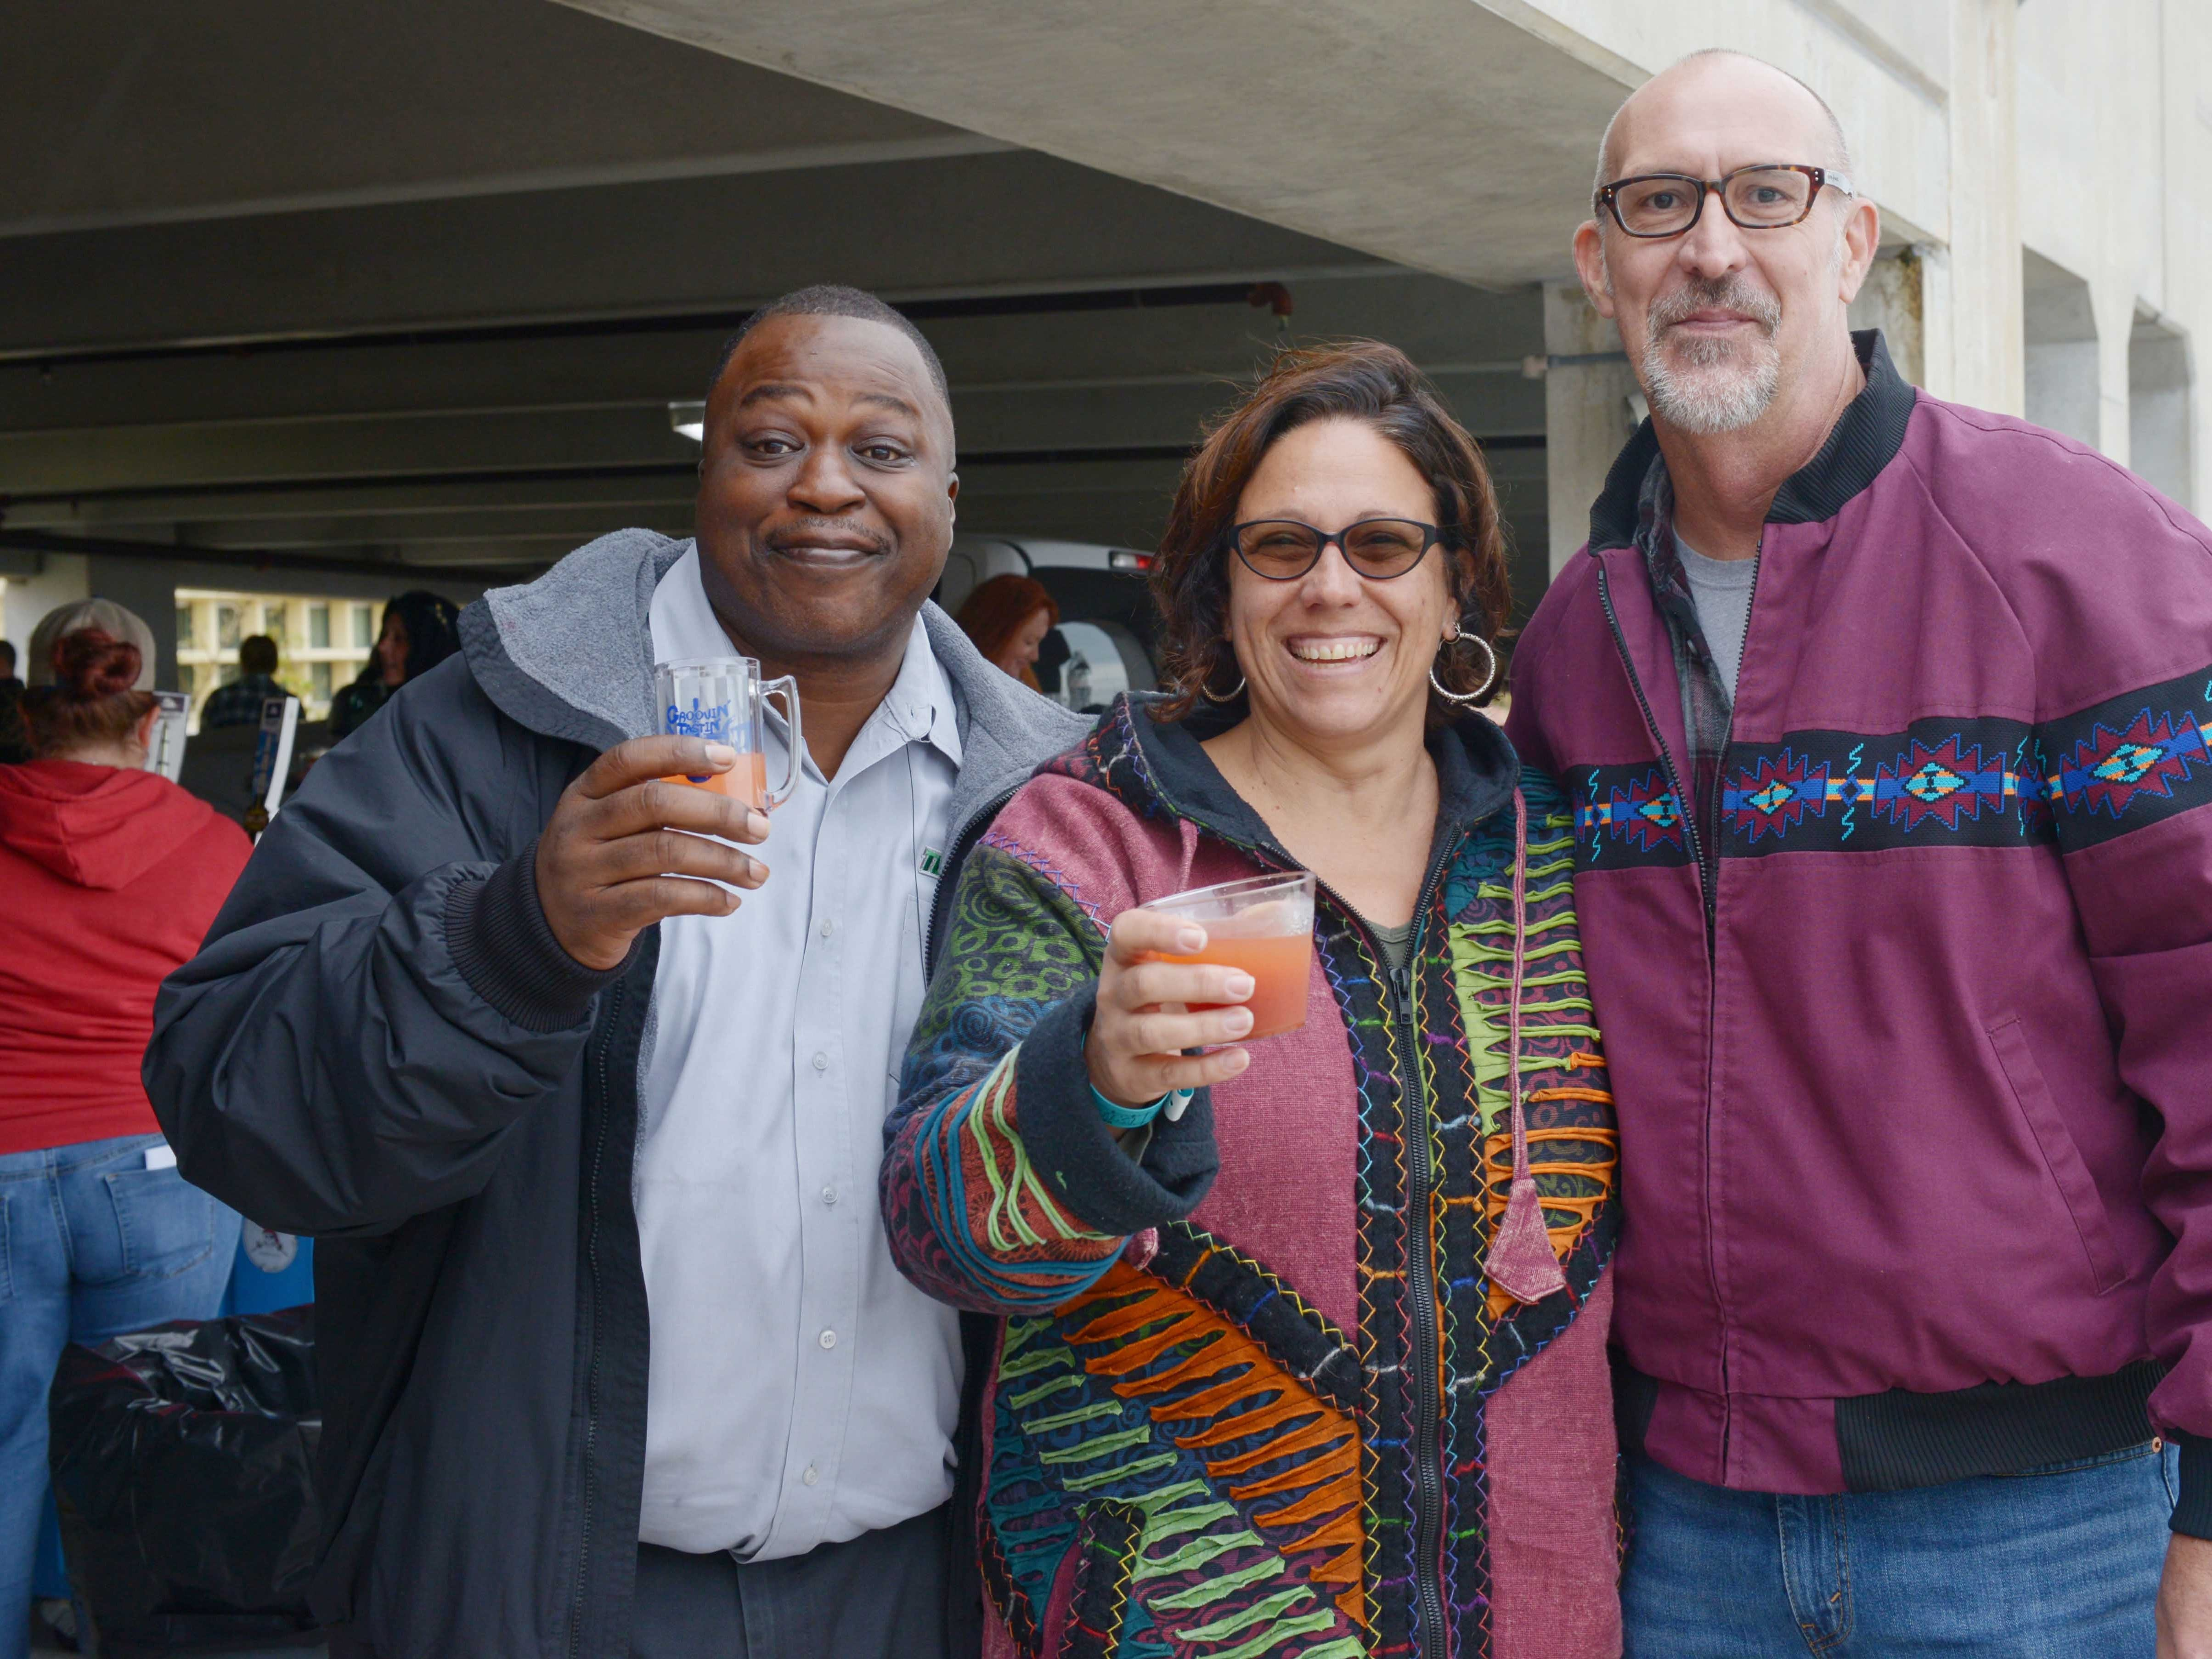 Alton Prater, left, and Leslie and Earl Taylor on the roof of the Fort Pierce City Parking Garage for Bluebird Educational Foundation's Groovin' & Tastin' Sunrise City Wine & Spirits Fest.